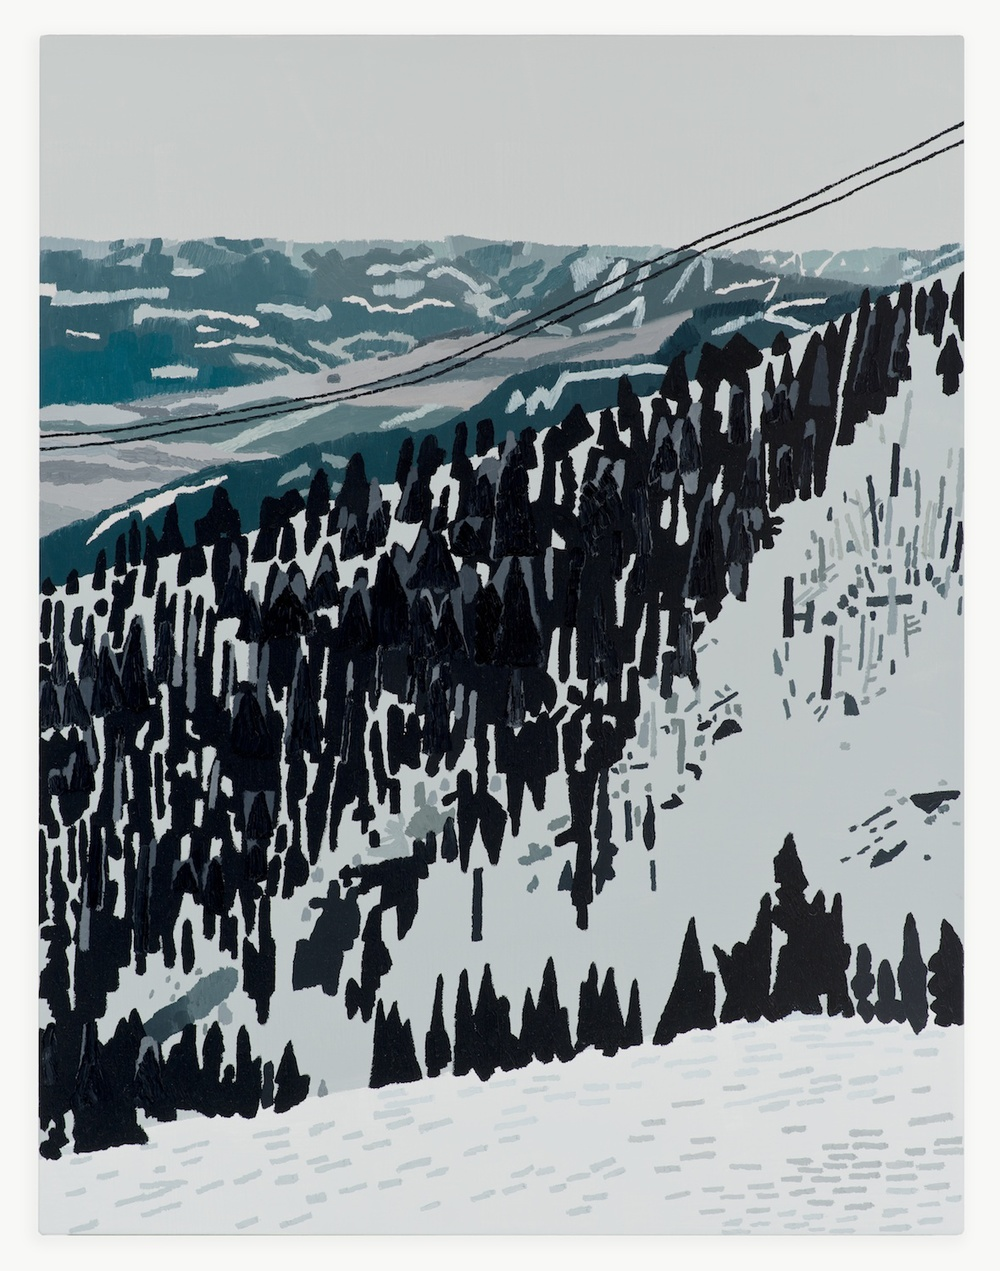 Jonas Wood Jackson Hole Wyoming 2013 Oil and acrylic on linen JW152